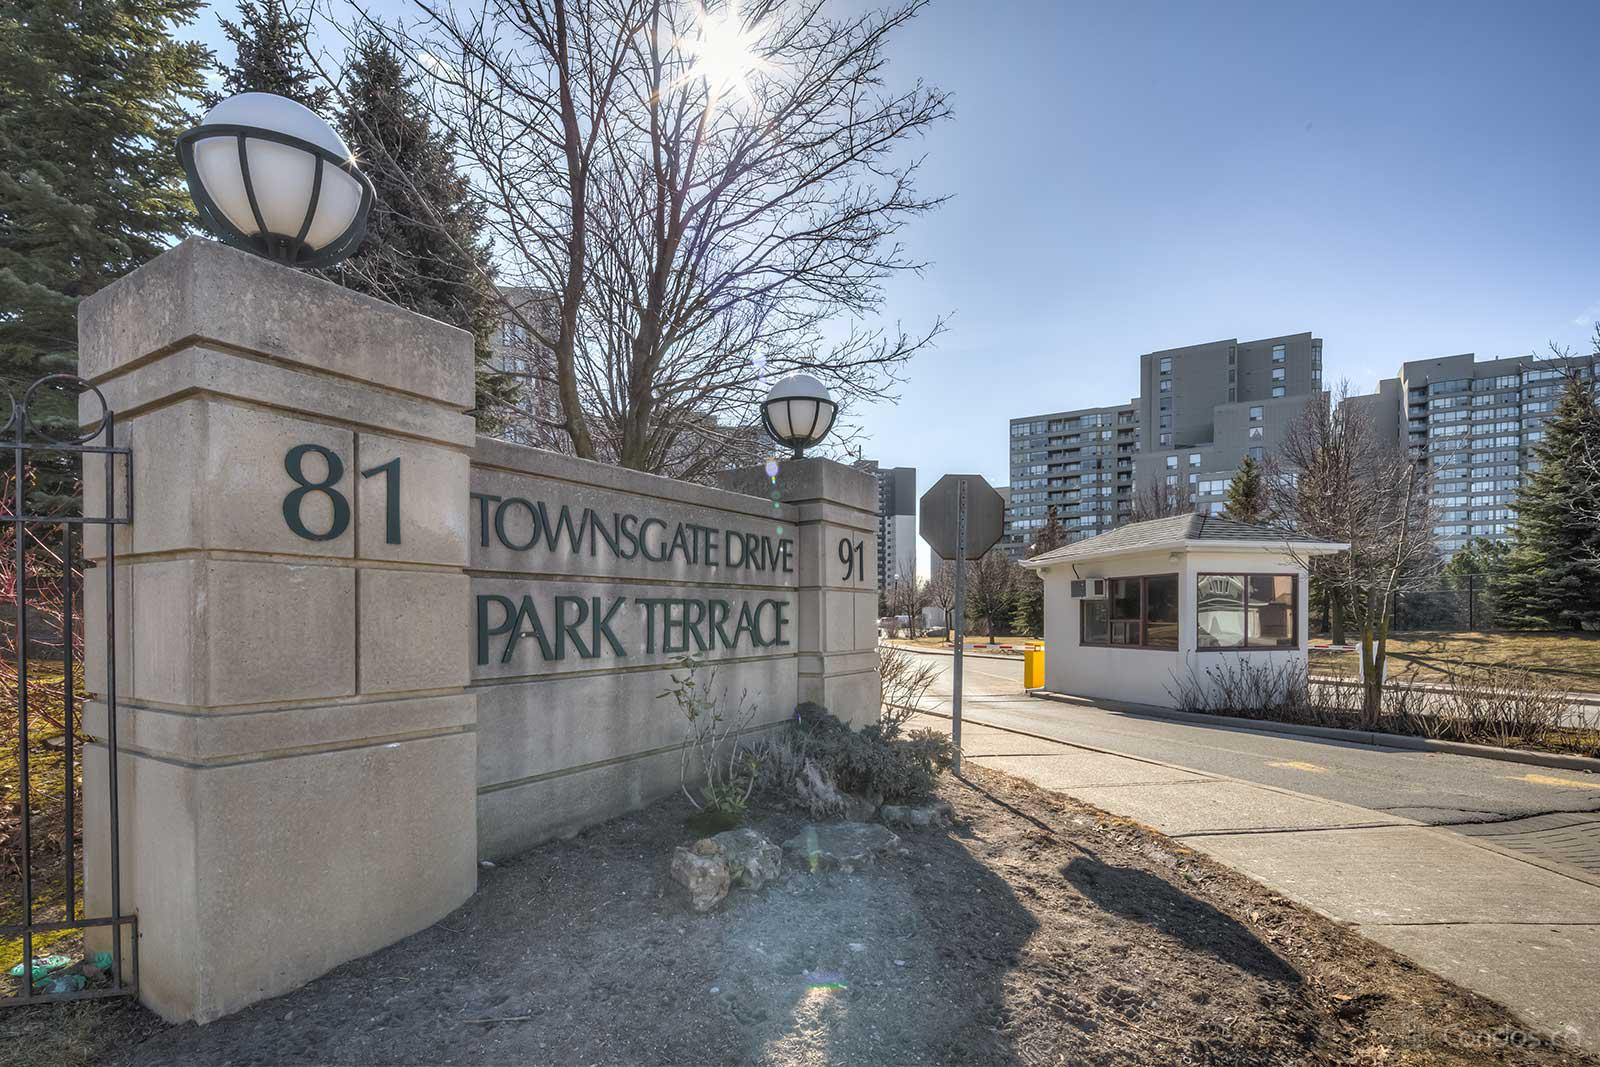 Park Terrace Ⅱ at 91 Townsgate Dr, Vaughan 0